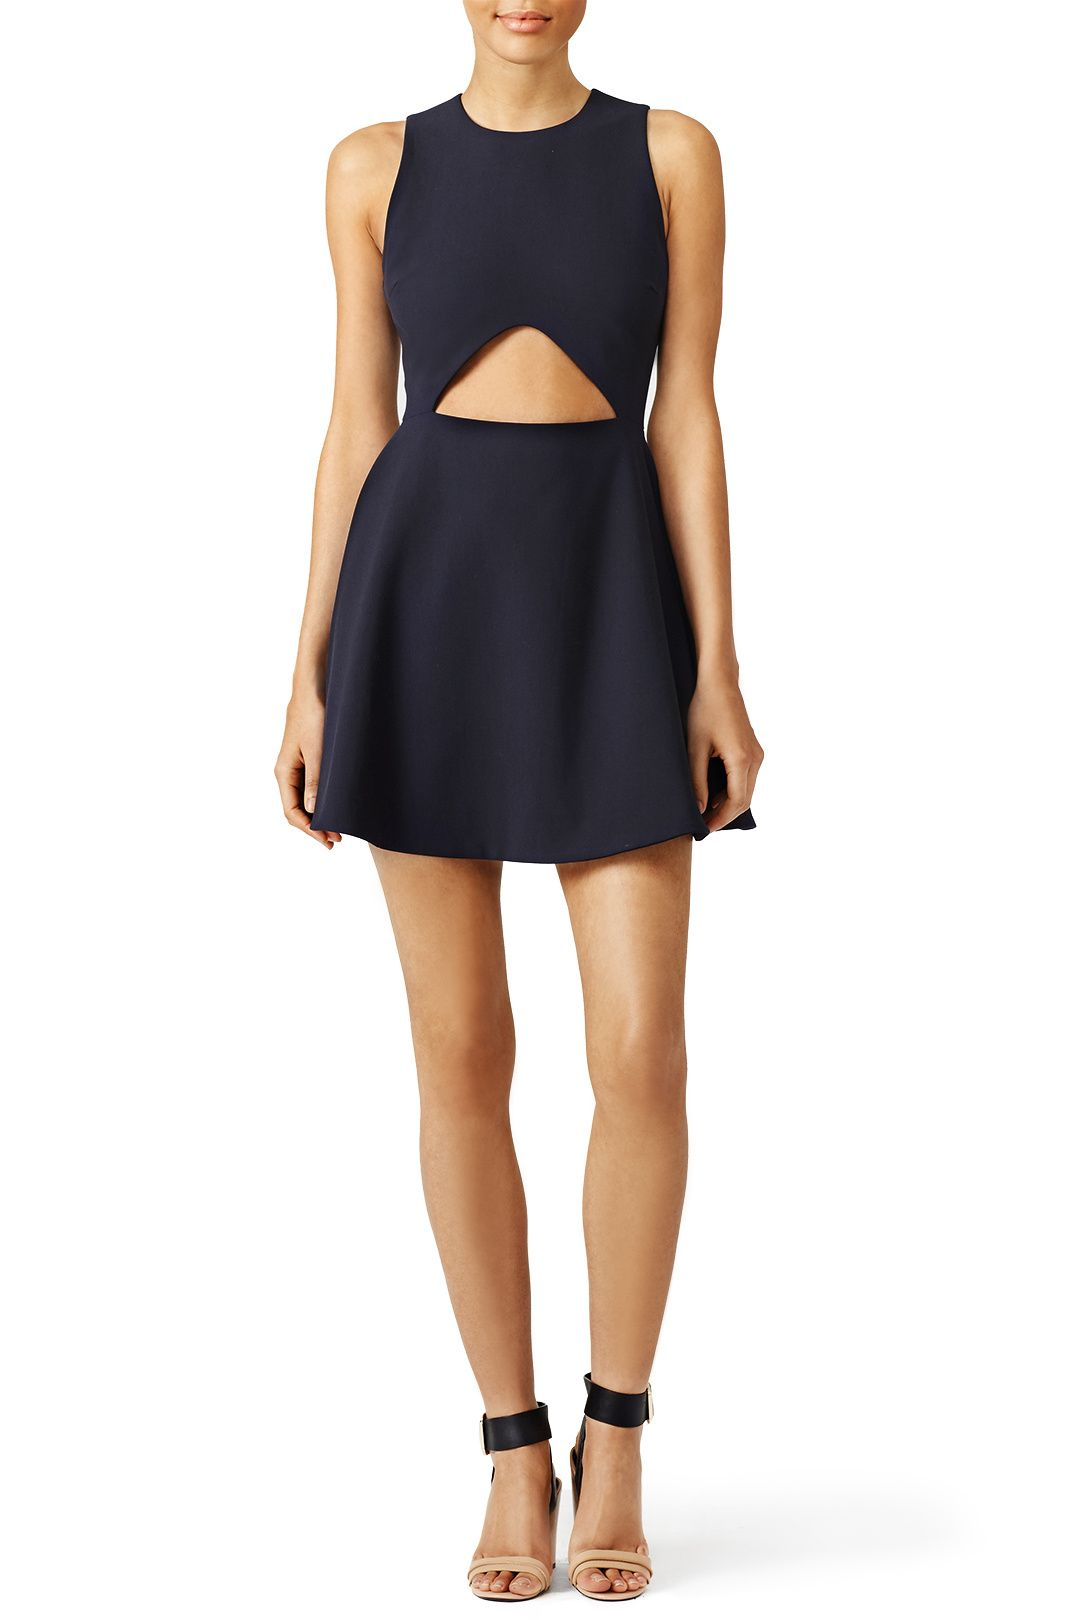 Show a hint of skin in this sophisticated cutout dress by Elizabeth and James. We love this look with strappy sandals.